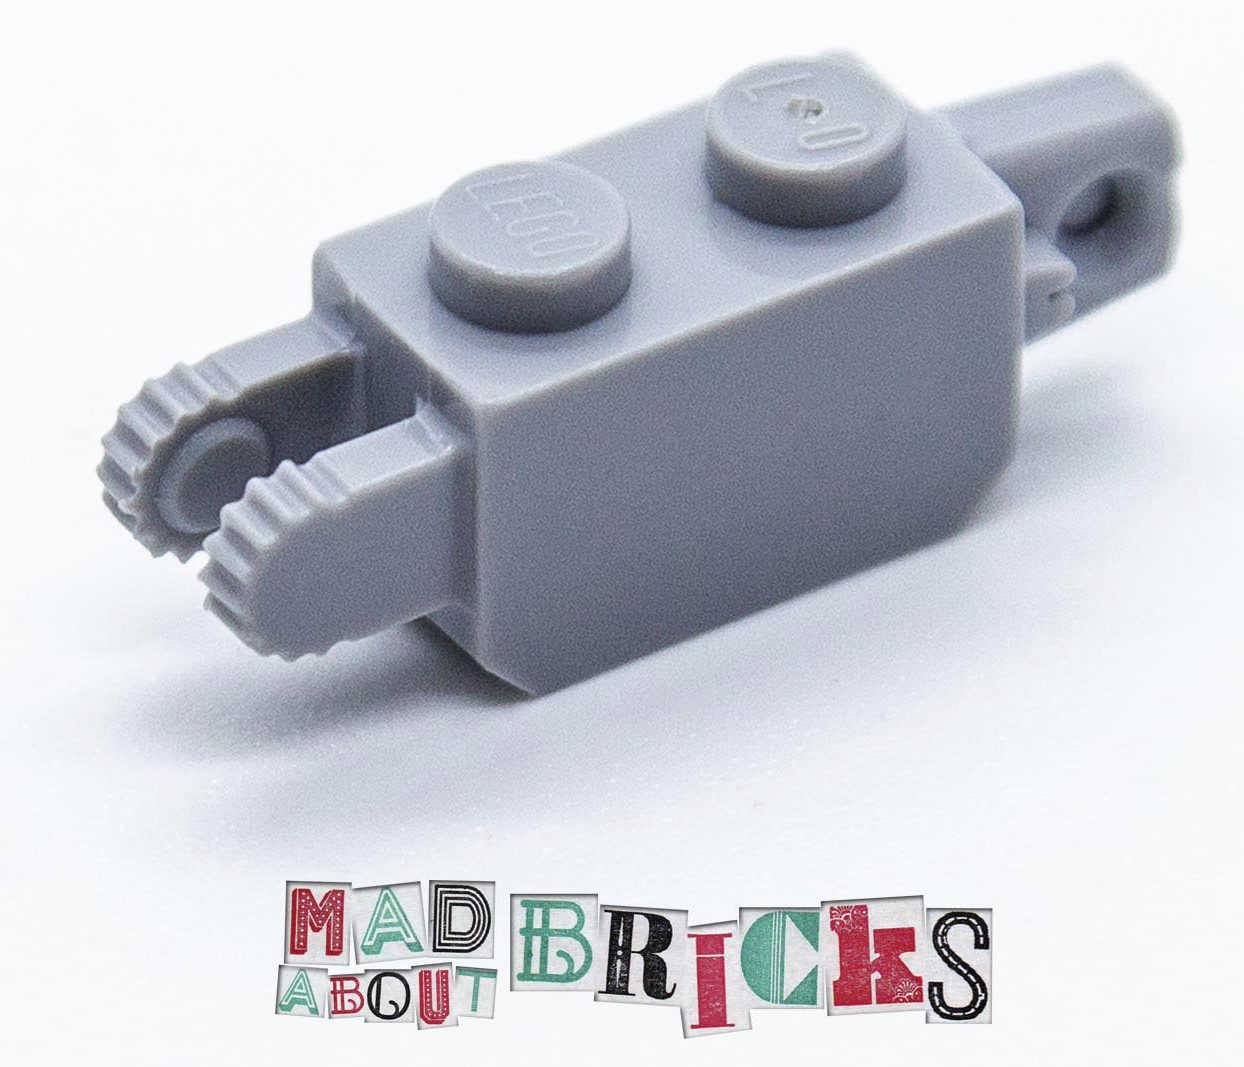 Lego 30386 1x2 Brick with Friction Stub Vertical Fork 4211667